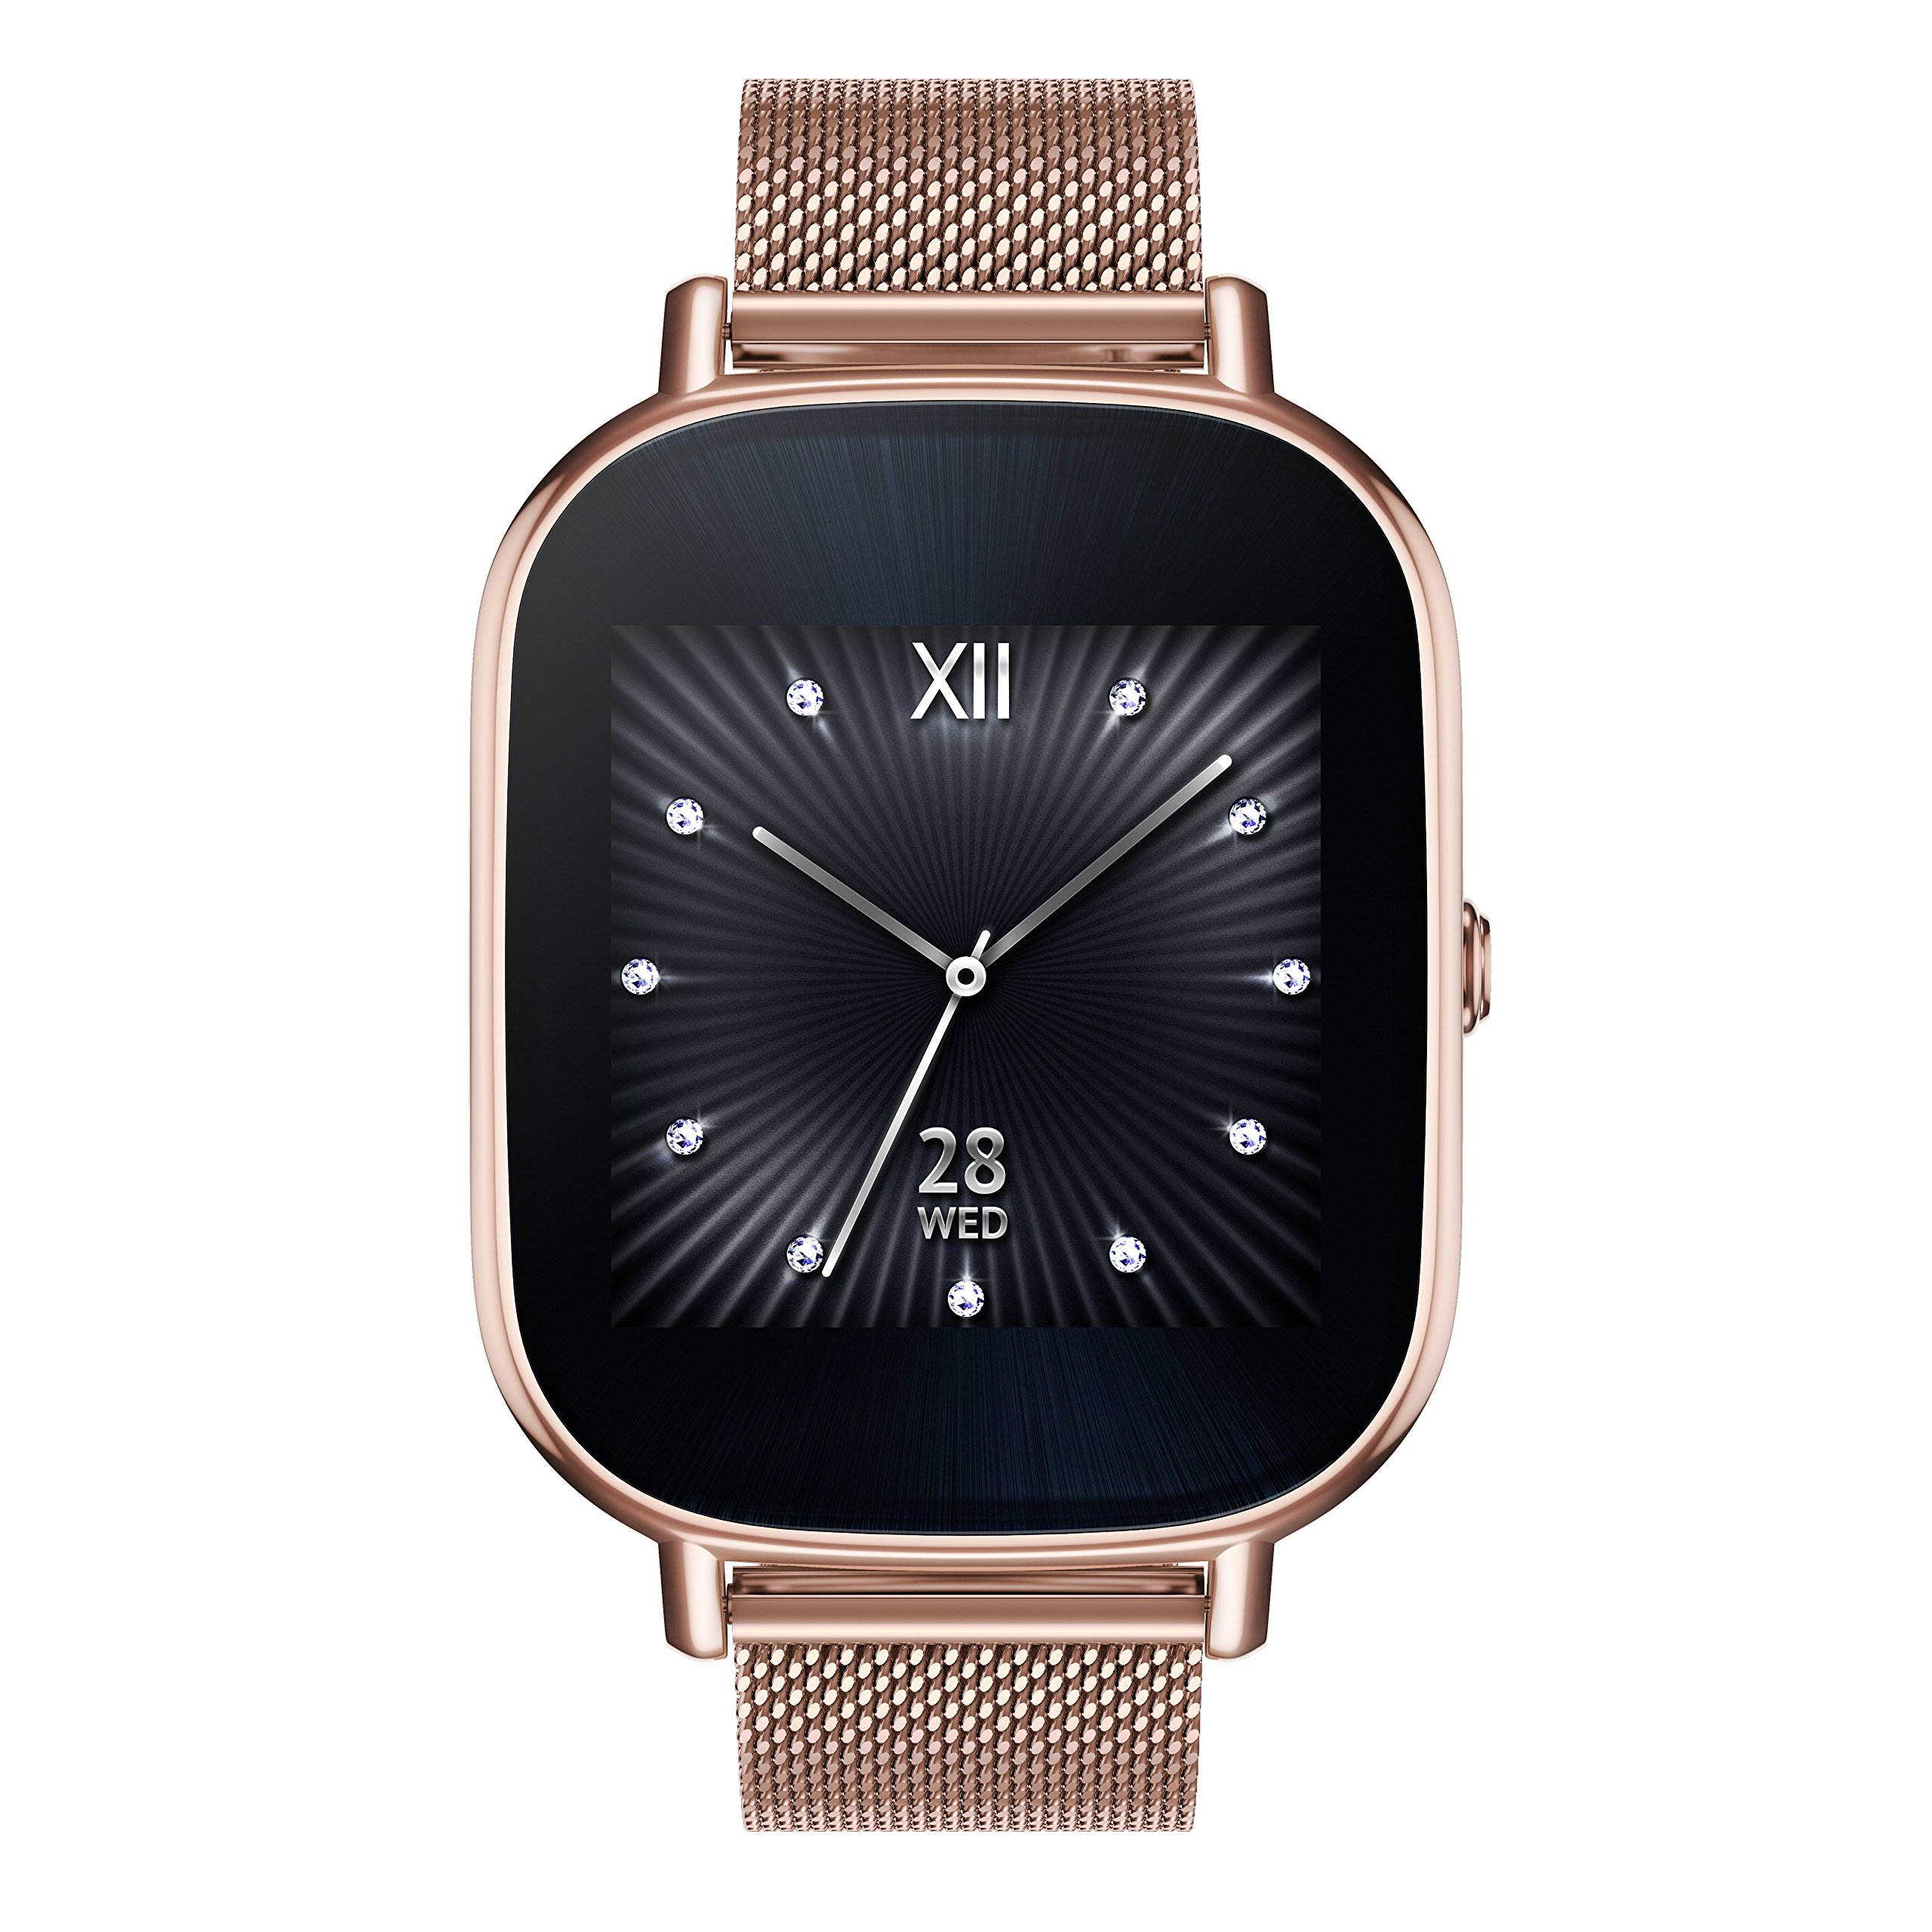 35369ae3c Get Quotations · ASUS ZenWatch 2 Rose Gold 37mm Smart Watch with Quick  Charge Battery, 4GB Storage,